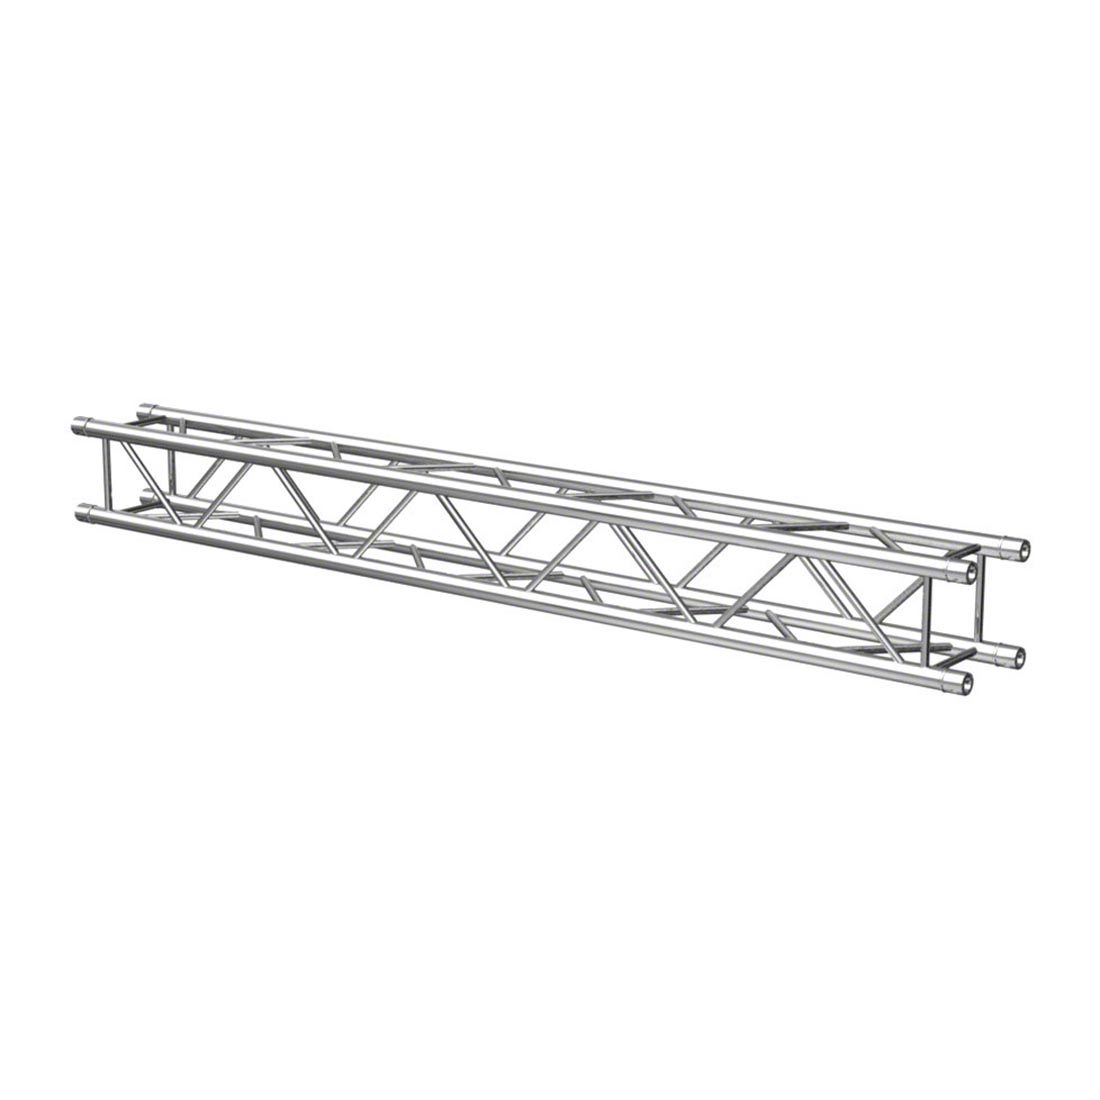 Individual Truss Pieces & Parts